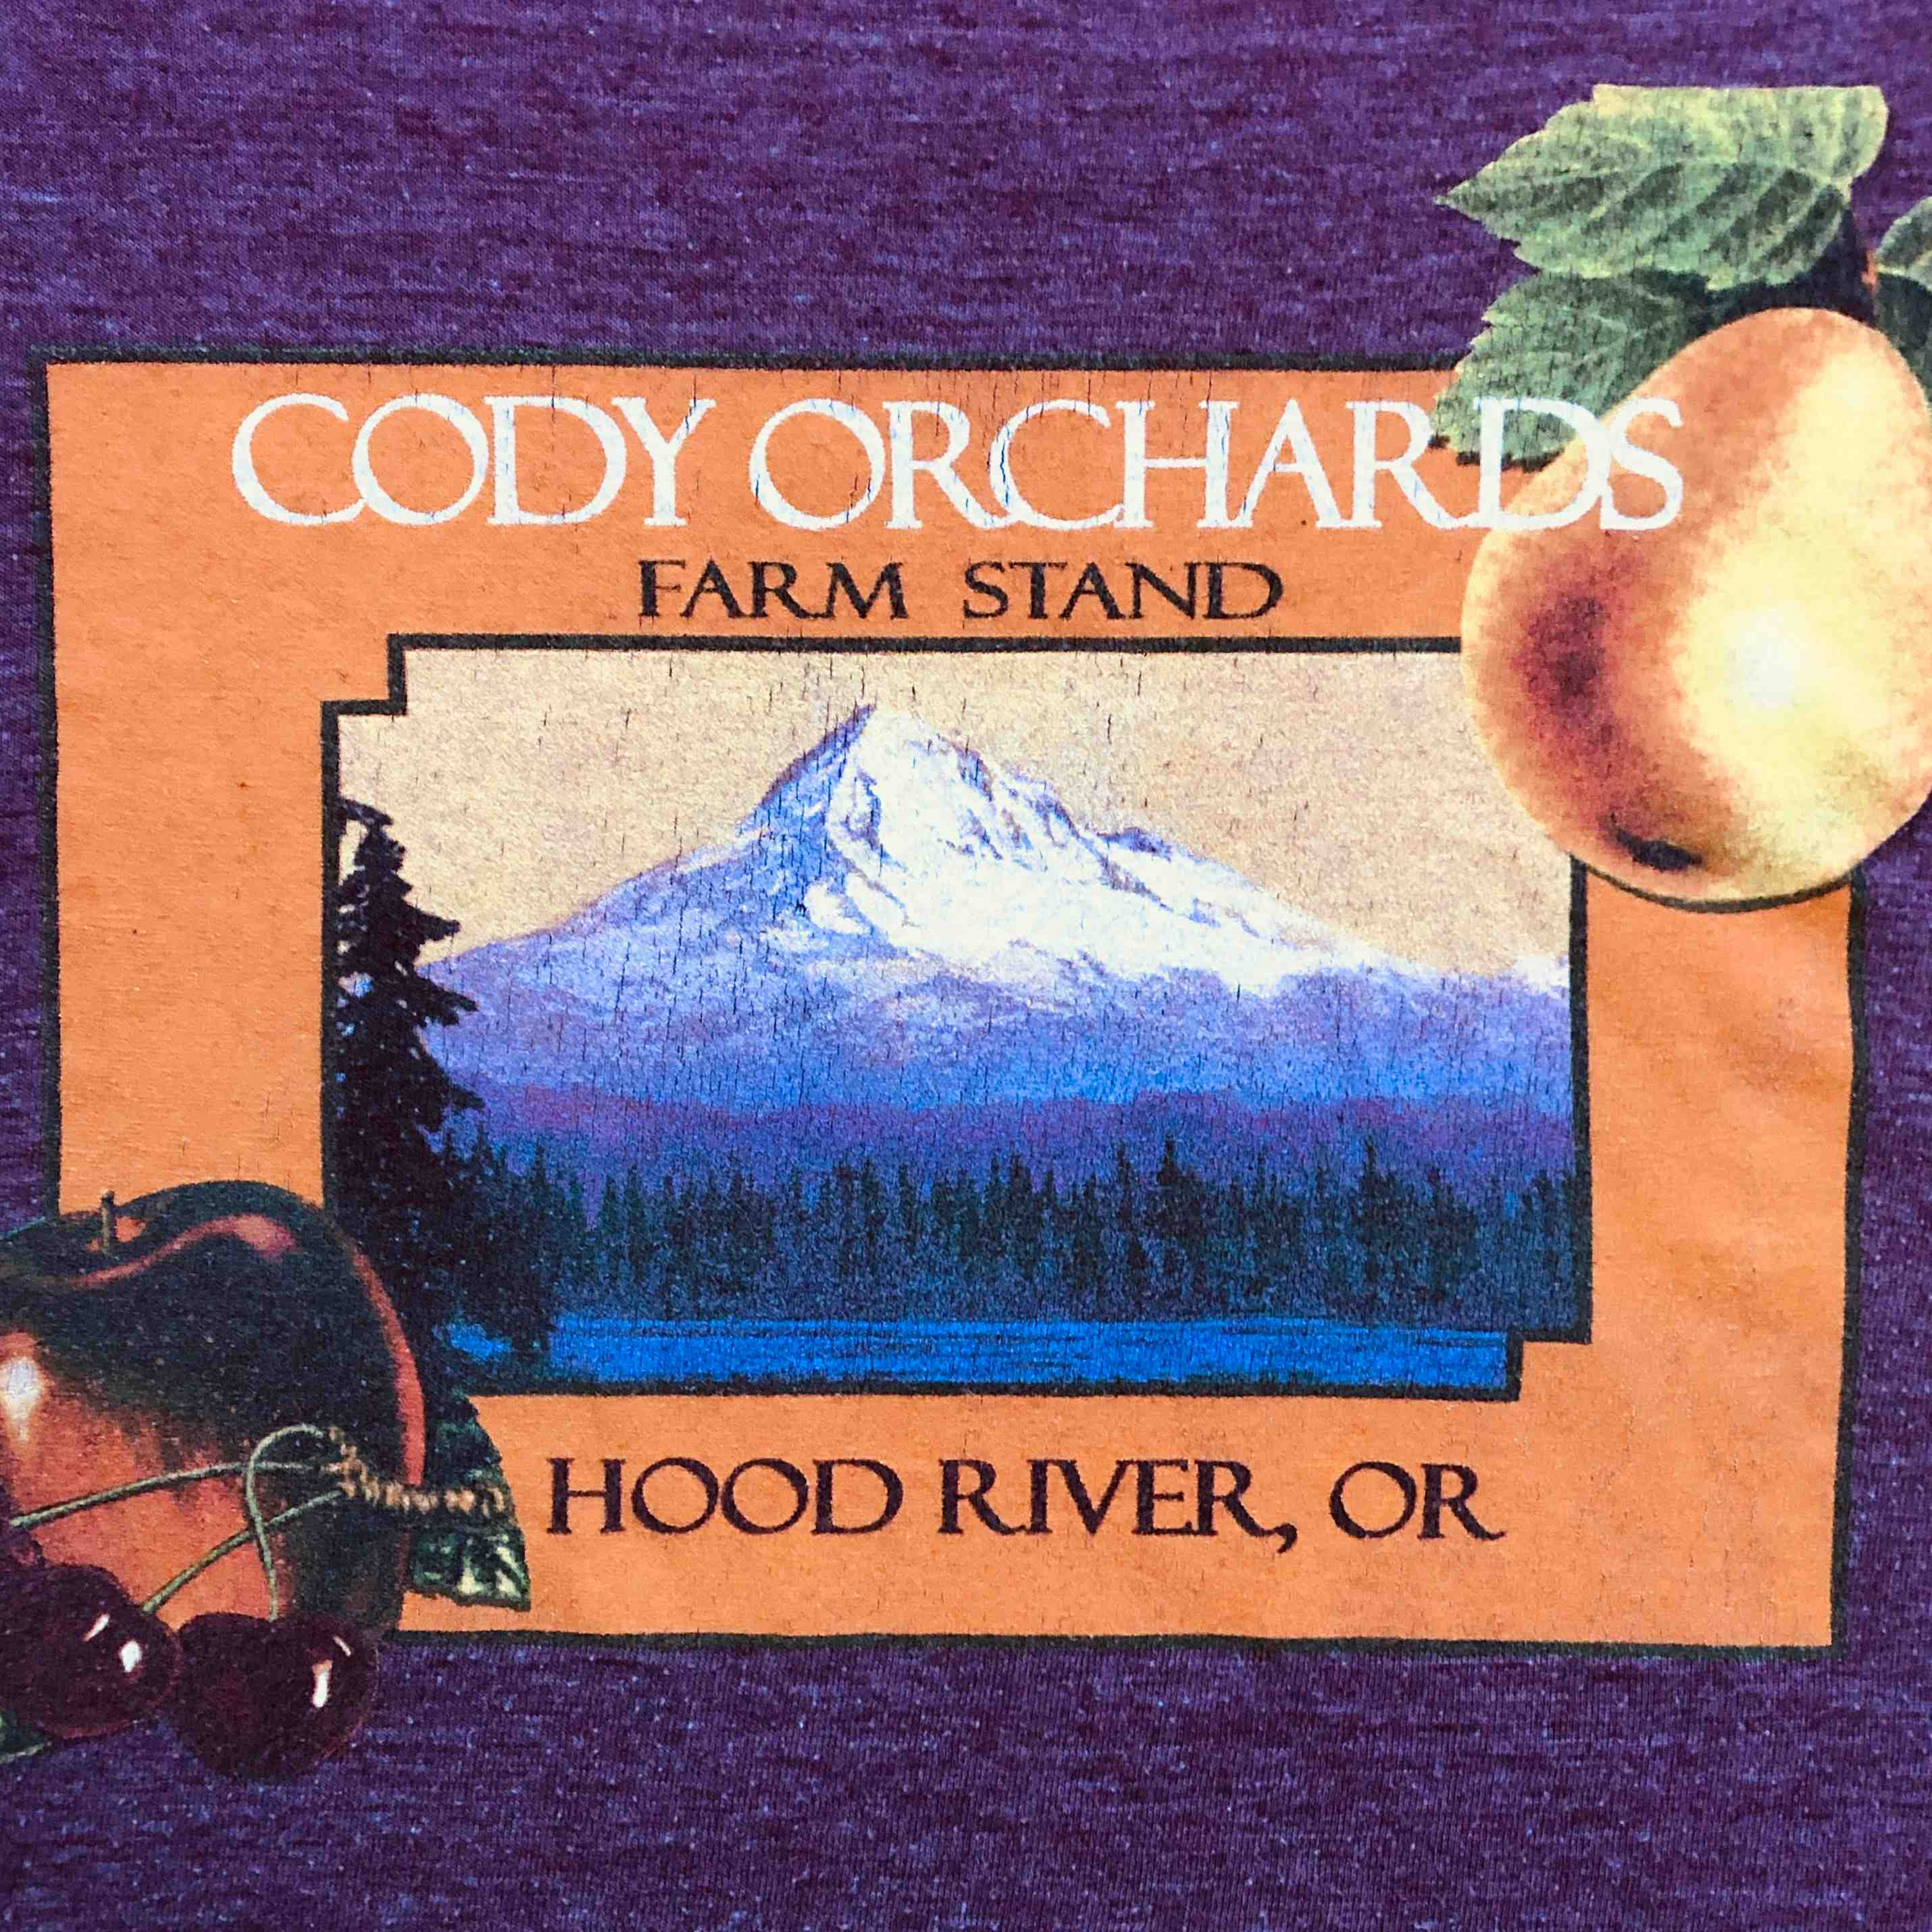 Cody Orchards Farm Stand